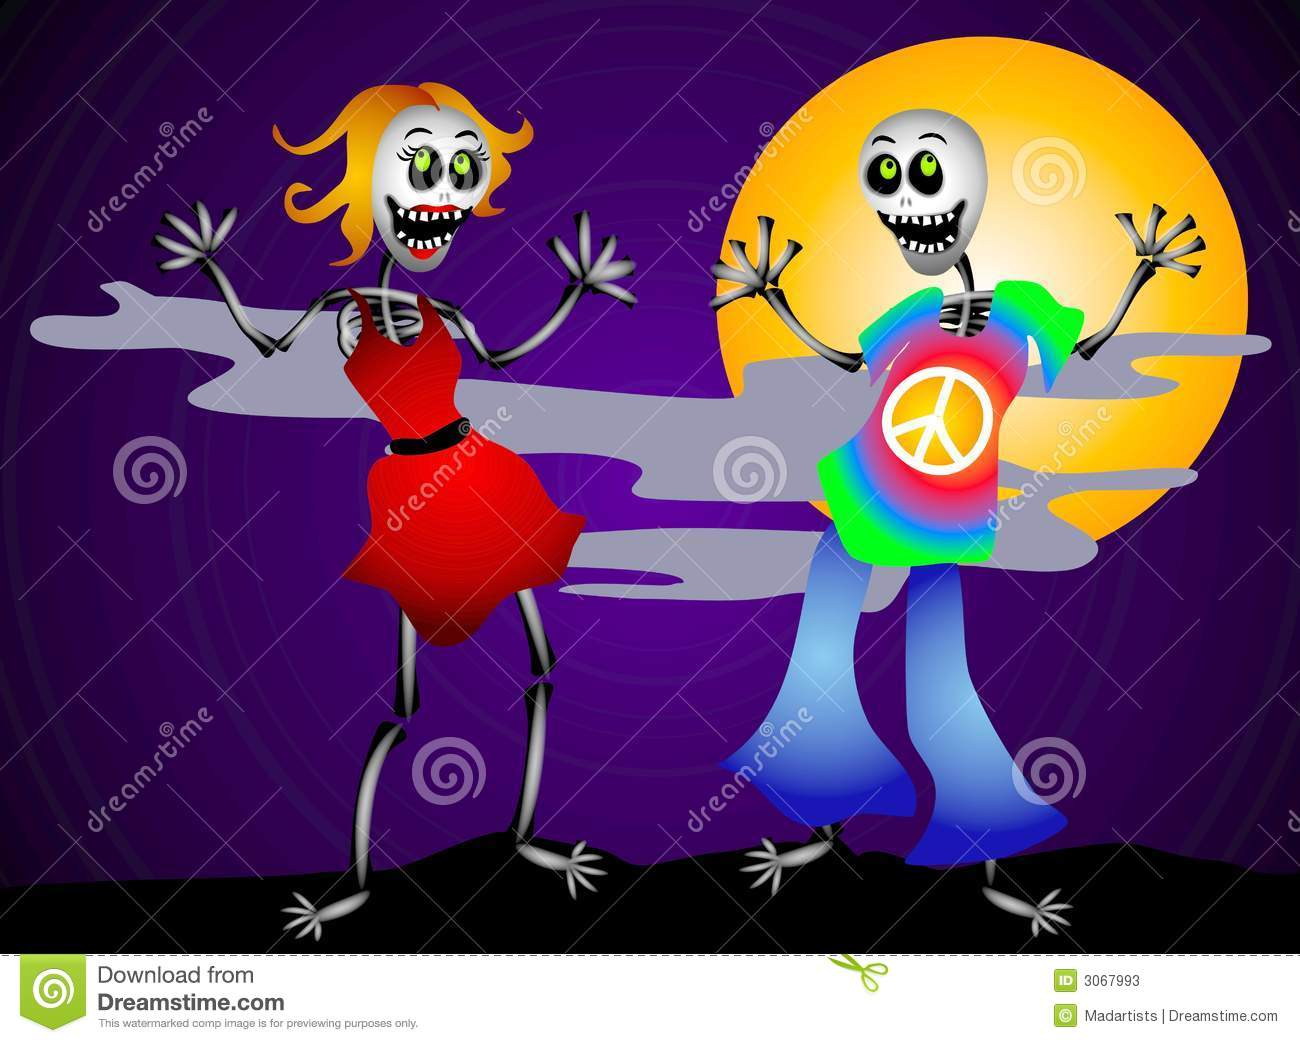 Halloween Party Skeletons 2 Stock Photos - Image: 3067993